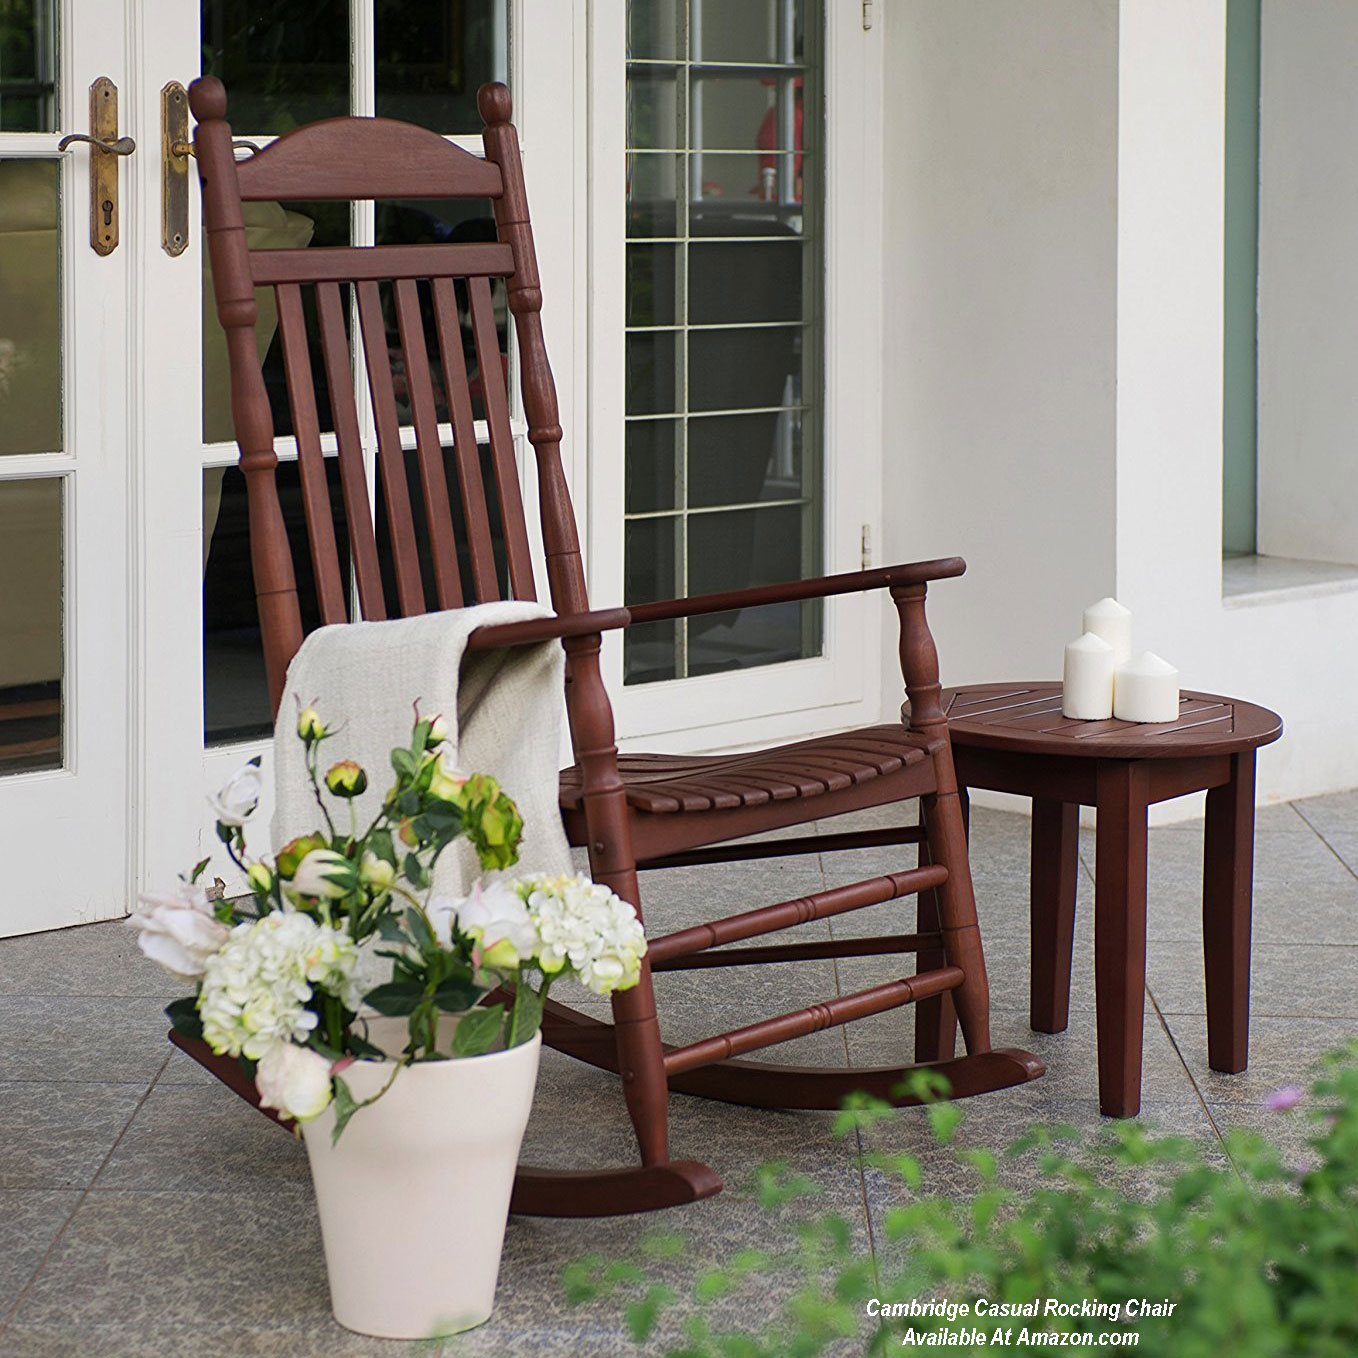 Porch Rocking Chair On Front Porch From Amazon.com